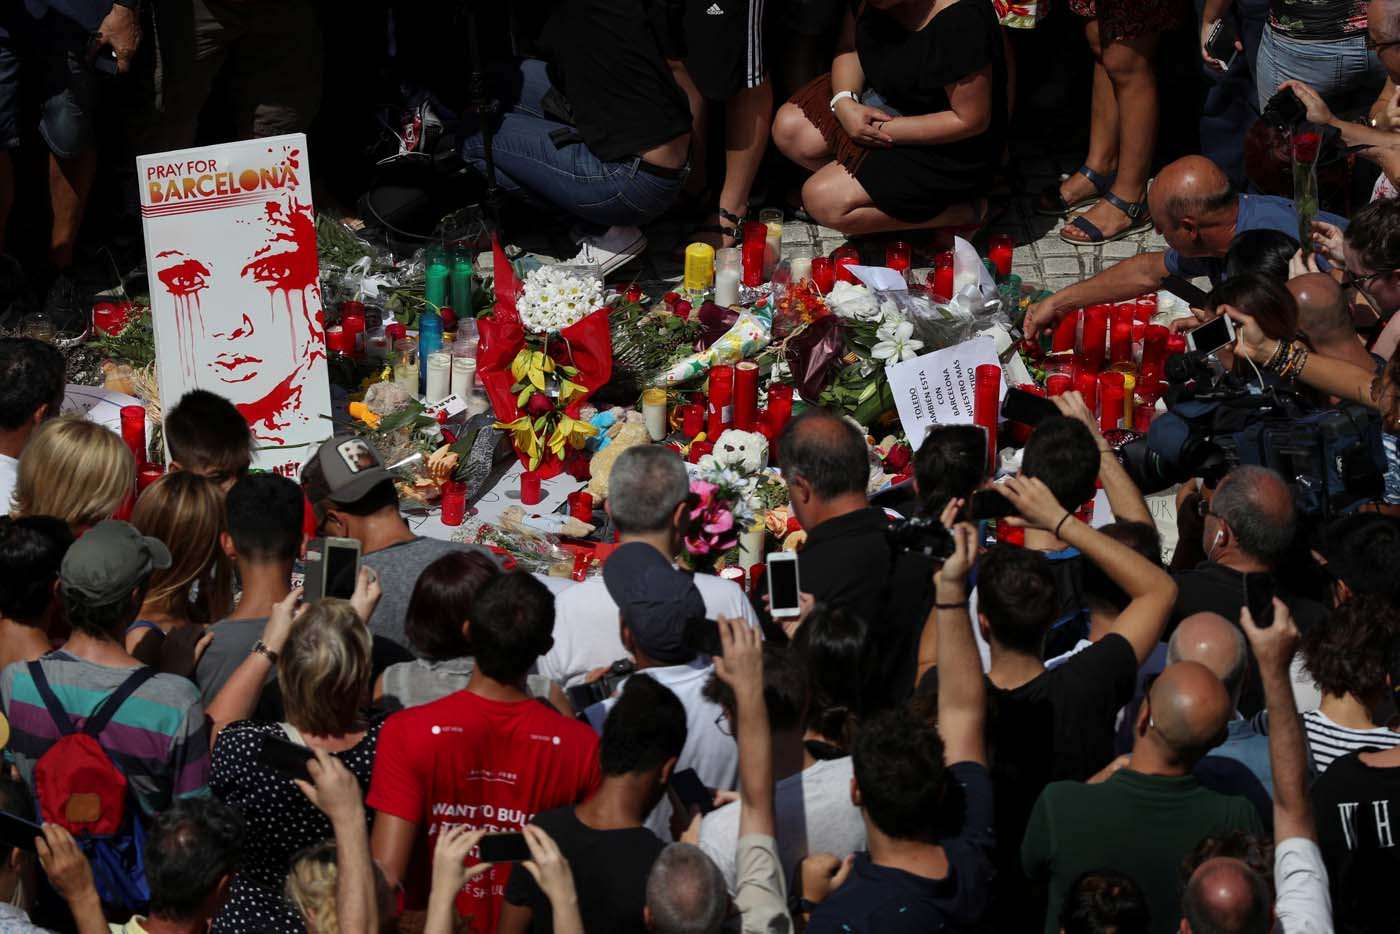 People gather around flowers and candles at Las Ramblas the day after a van crashed into pedestrians in Barcelona, Spain, August 18, 2017. REUTERS/Sergio Perez